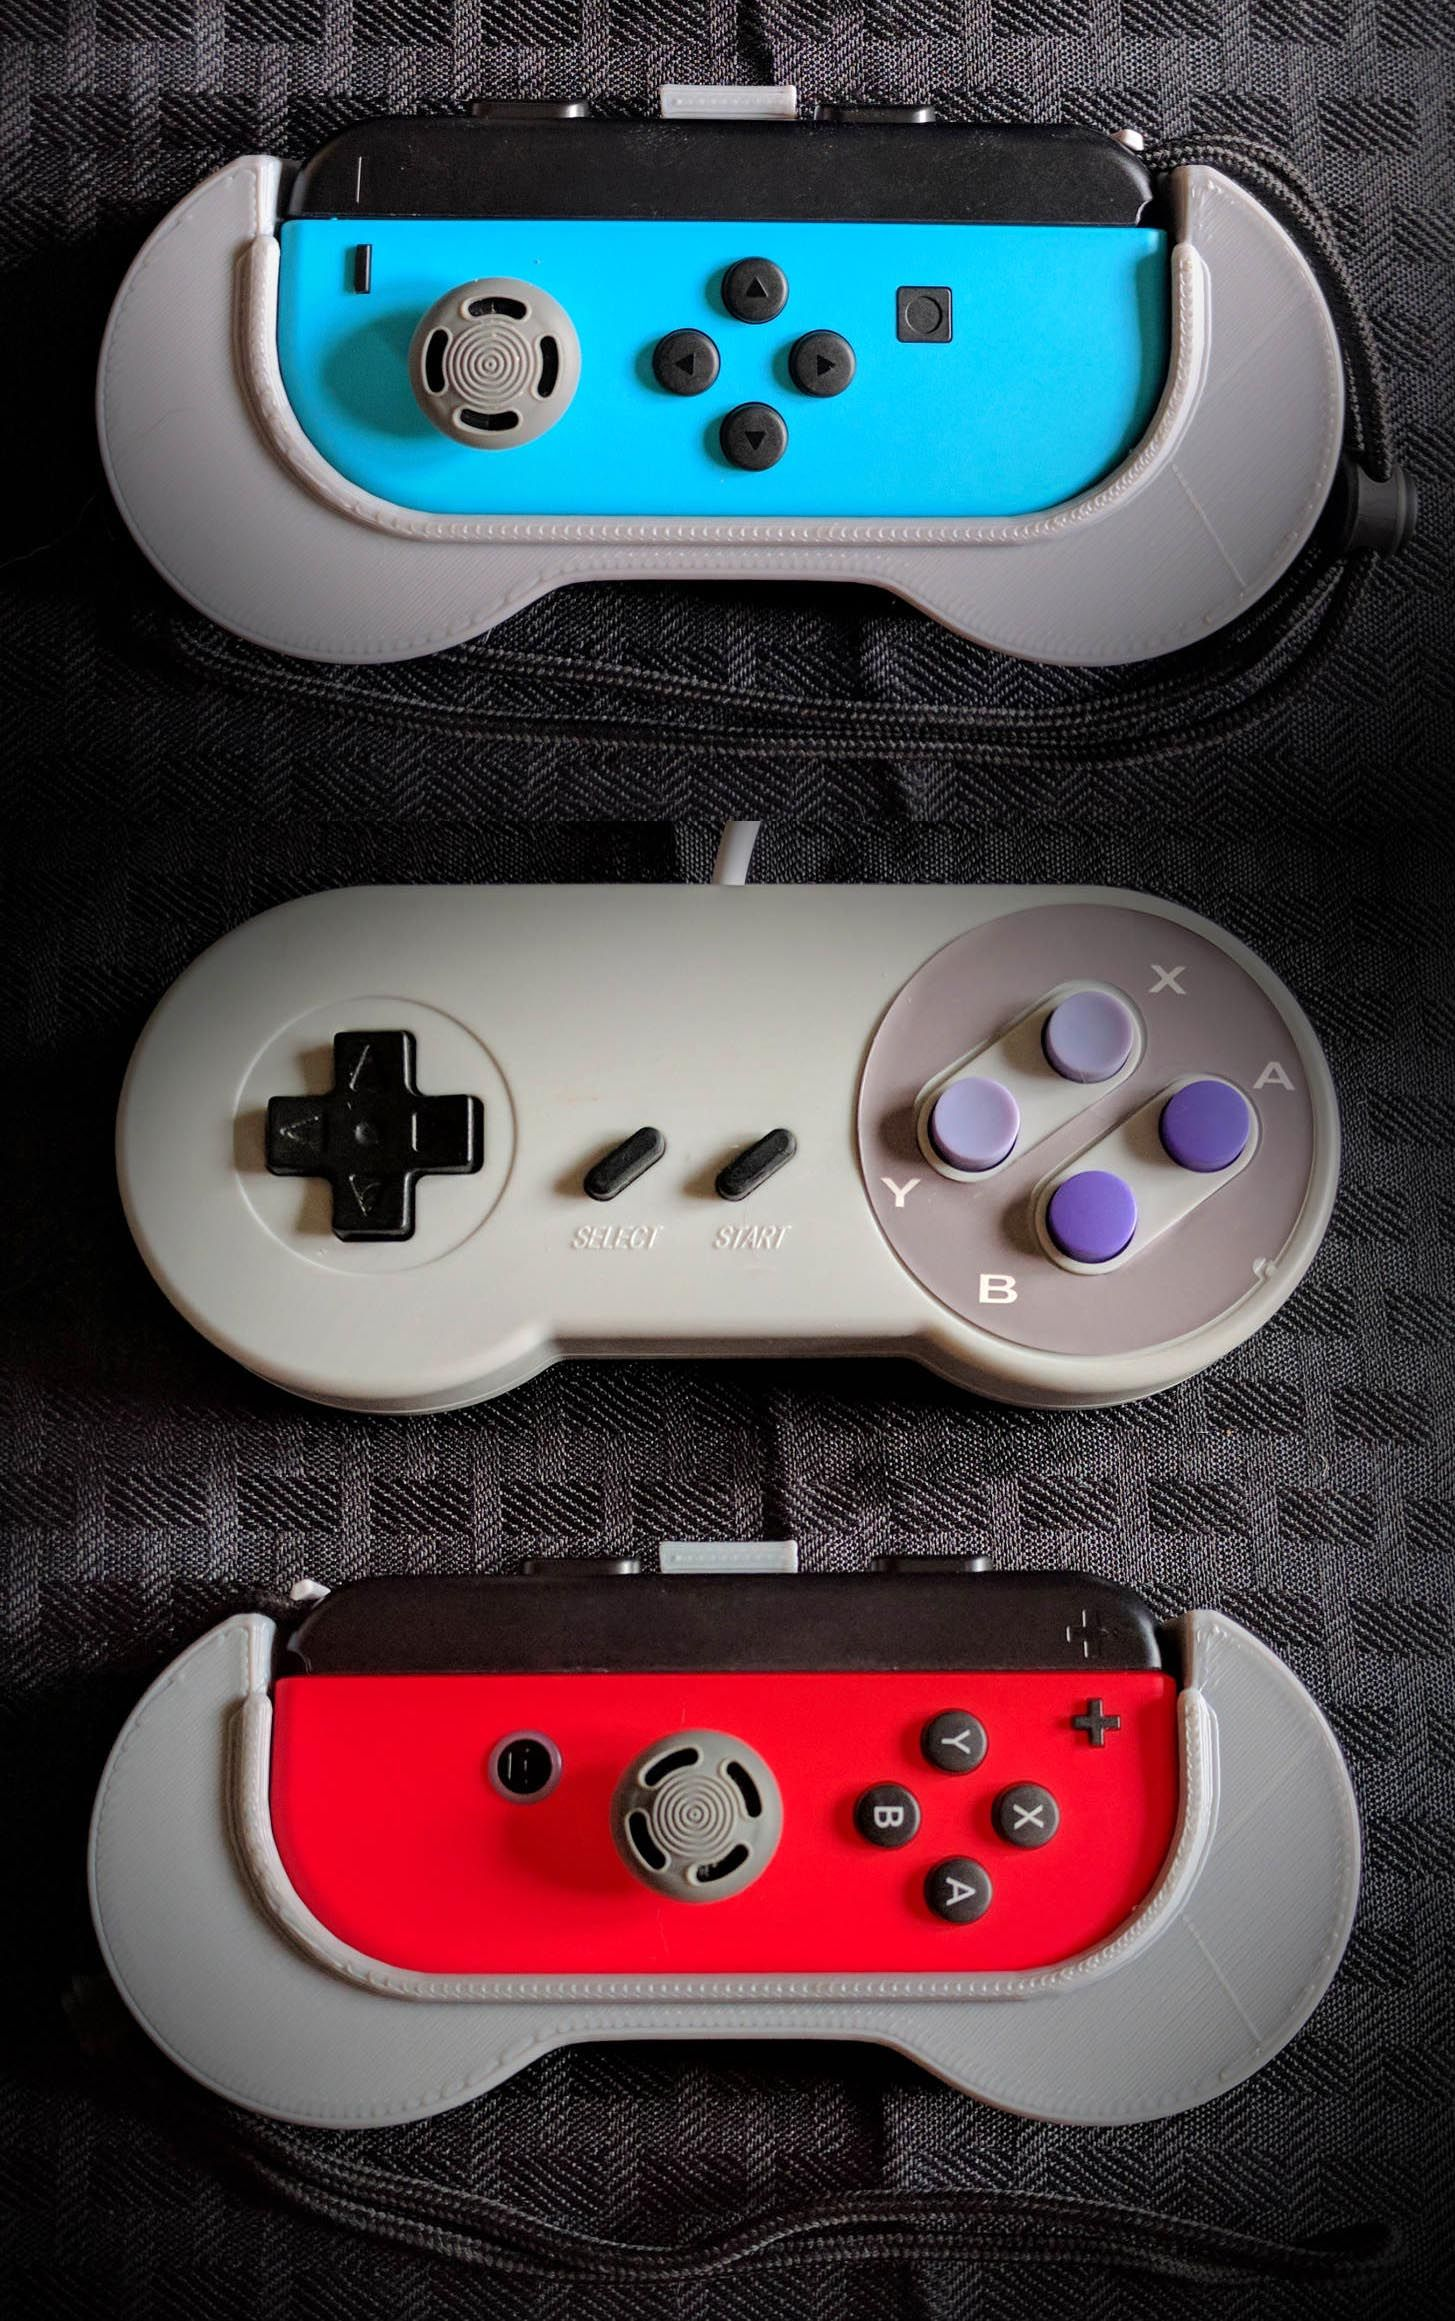 Switch Snes Controller Grip Nintendo Pinterest Splatoon2 Hard Case Ink X Squid Hori Super Adapter For The